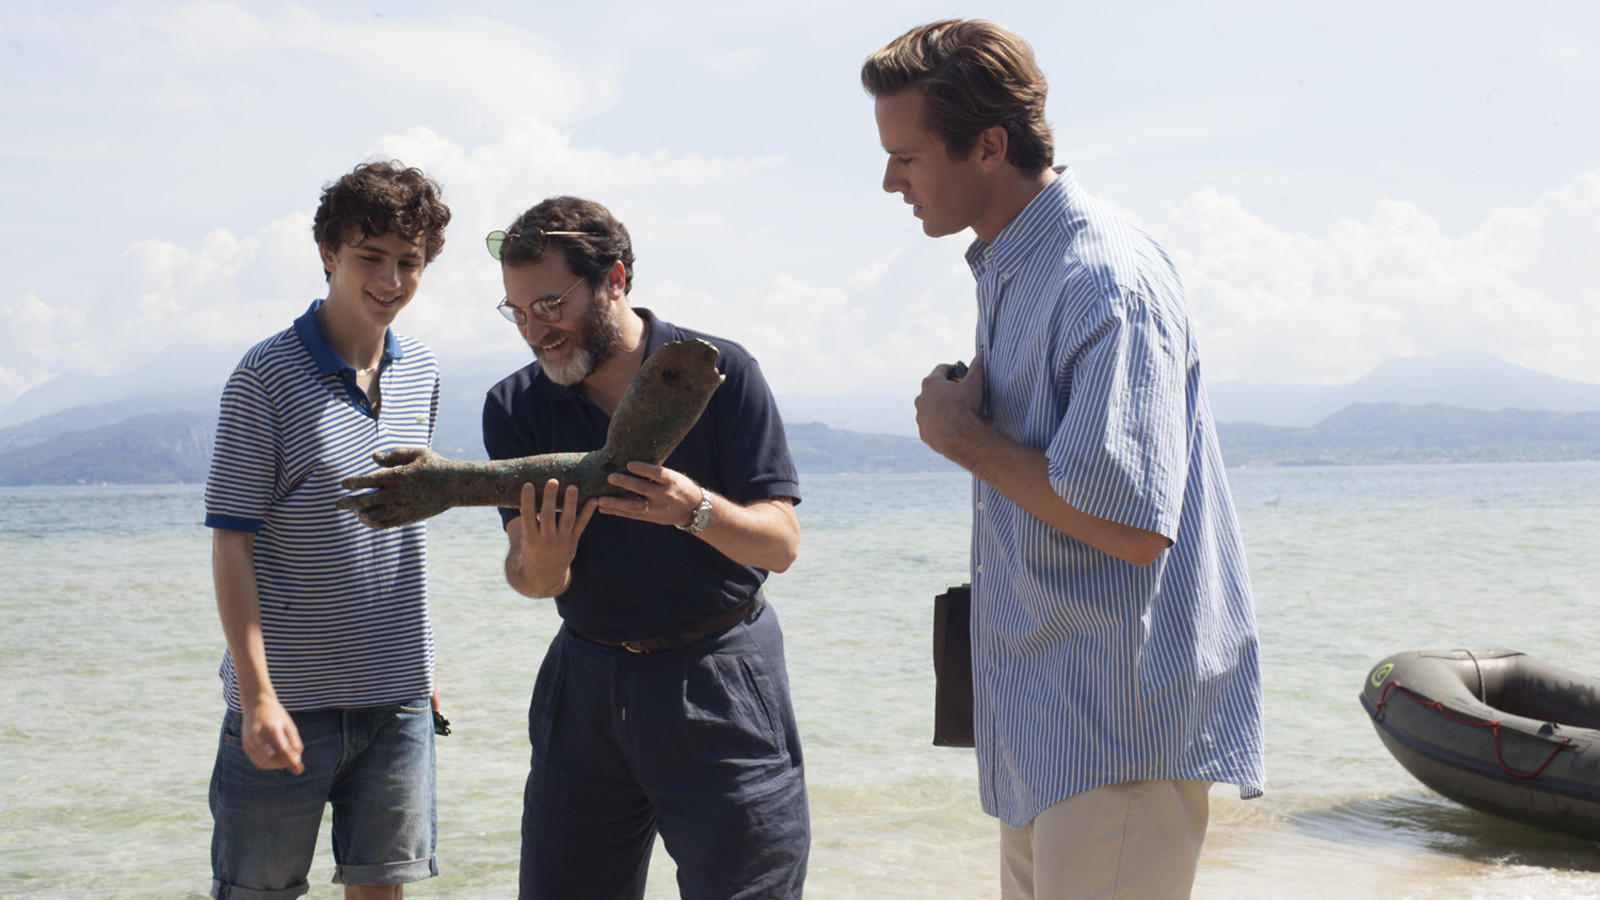 Luca Guadagnino's gay love story 'Call Me by Your Name' is a new coming-of-age classic